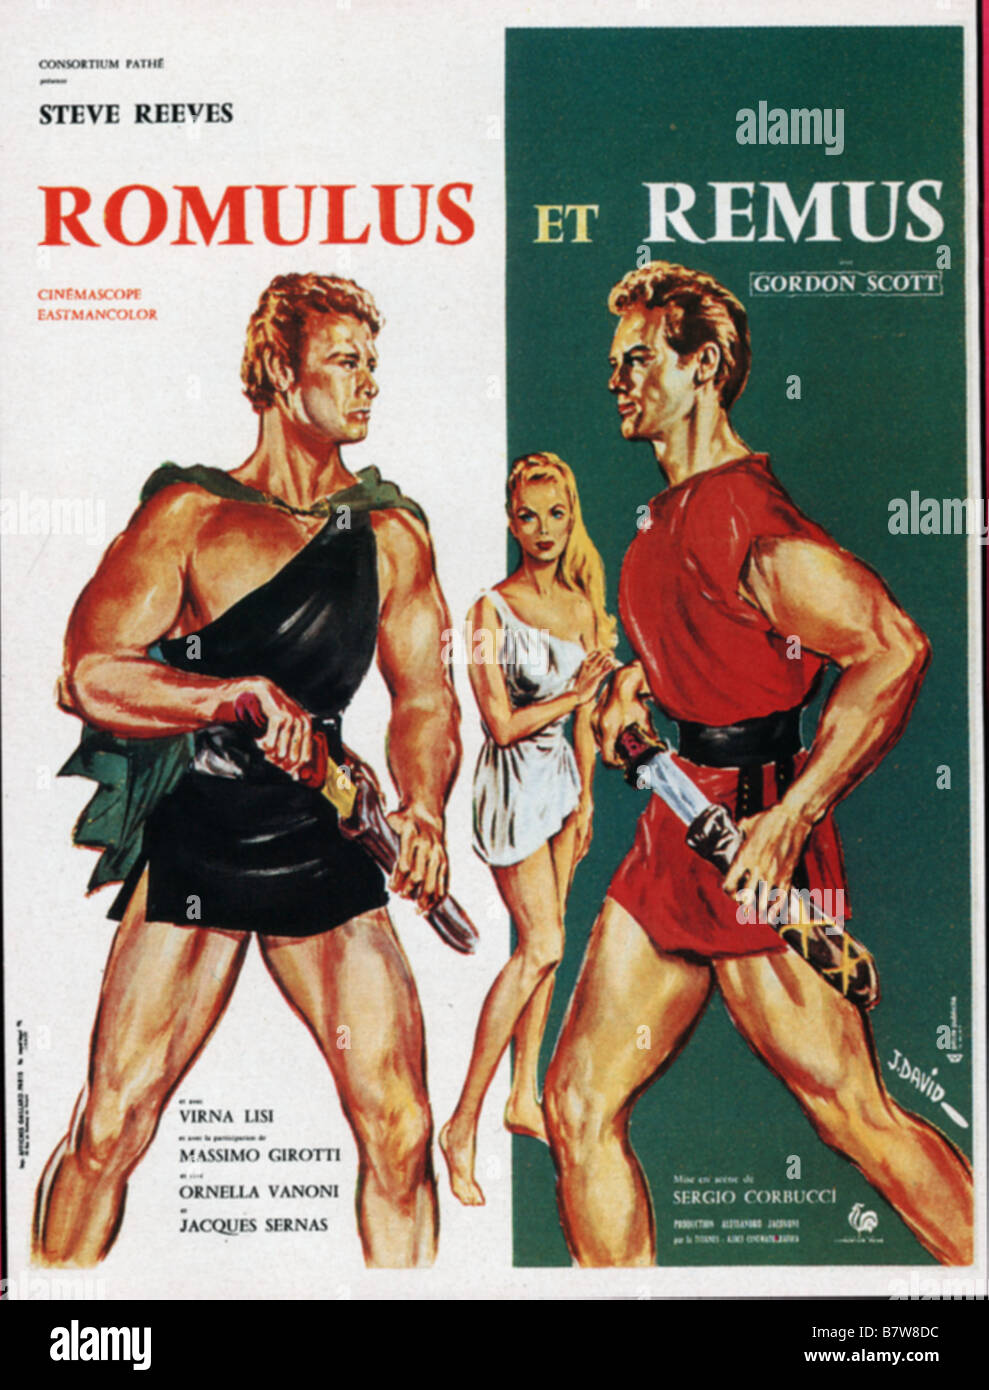 Romulus et remus romolo e remo ann e 1961 italy affiche poster stock photo royalty free image for Poster et affiche